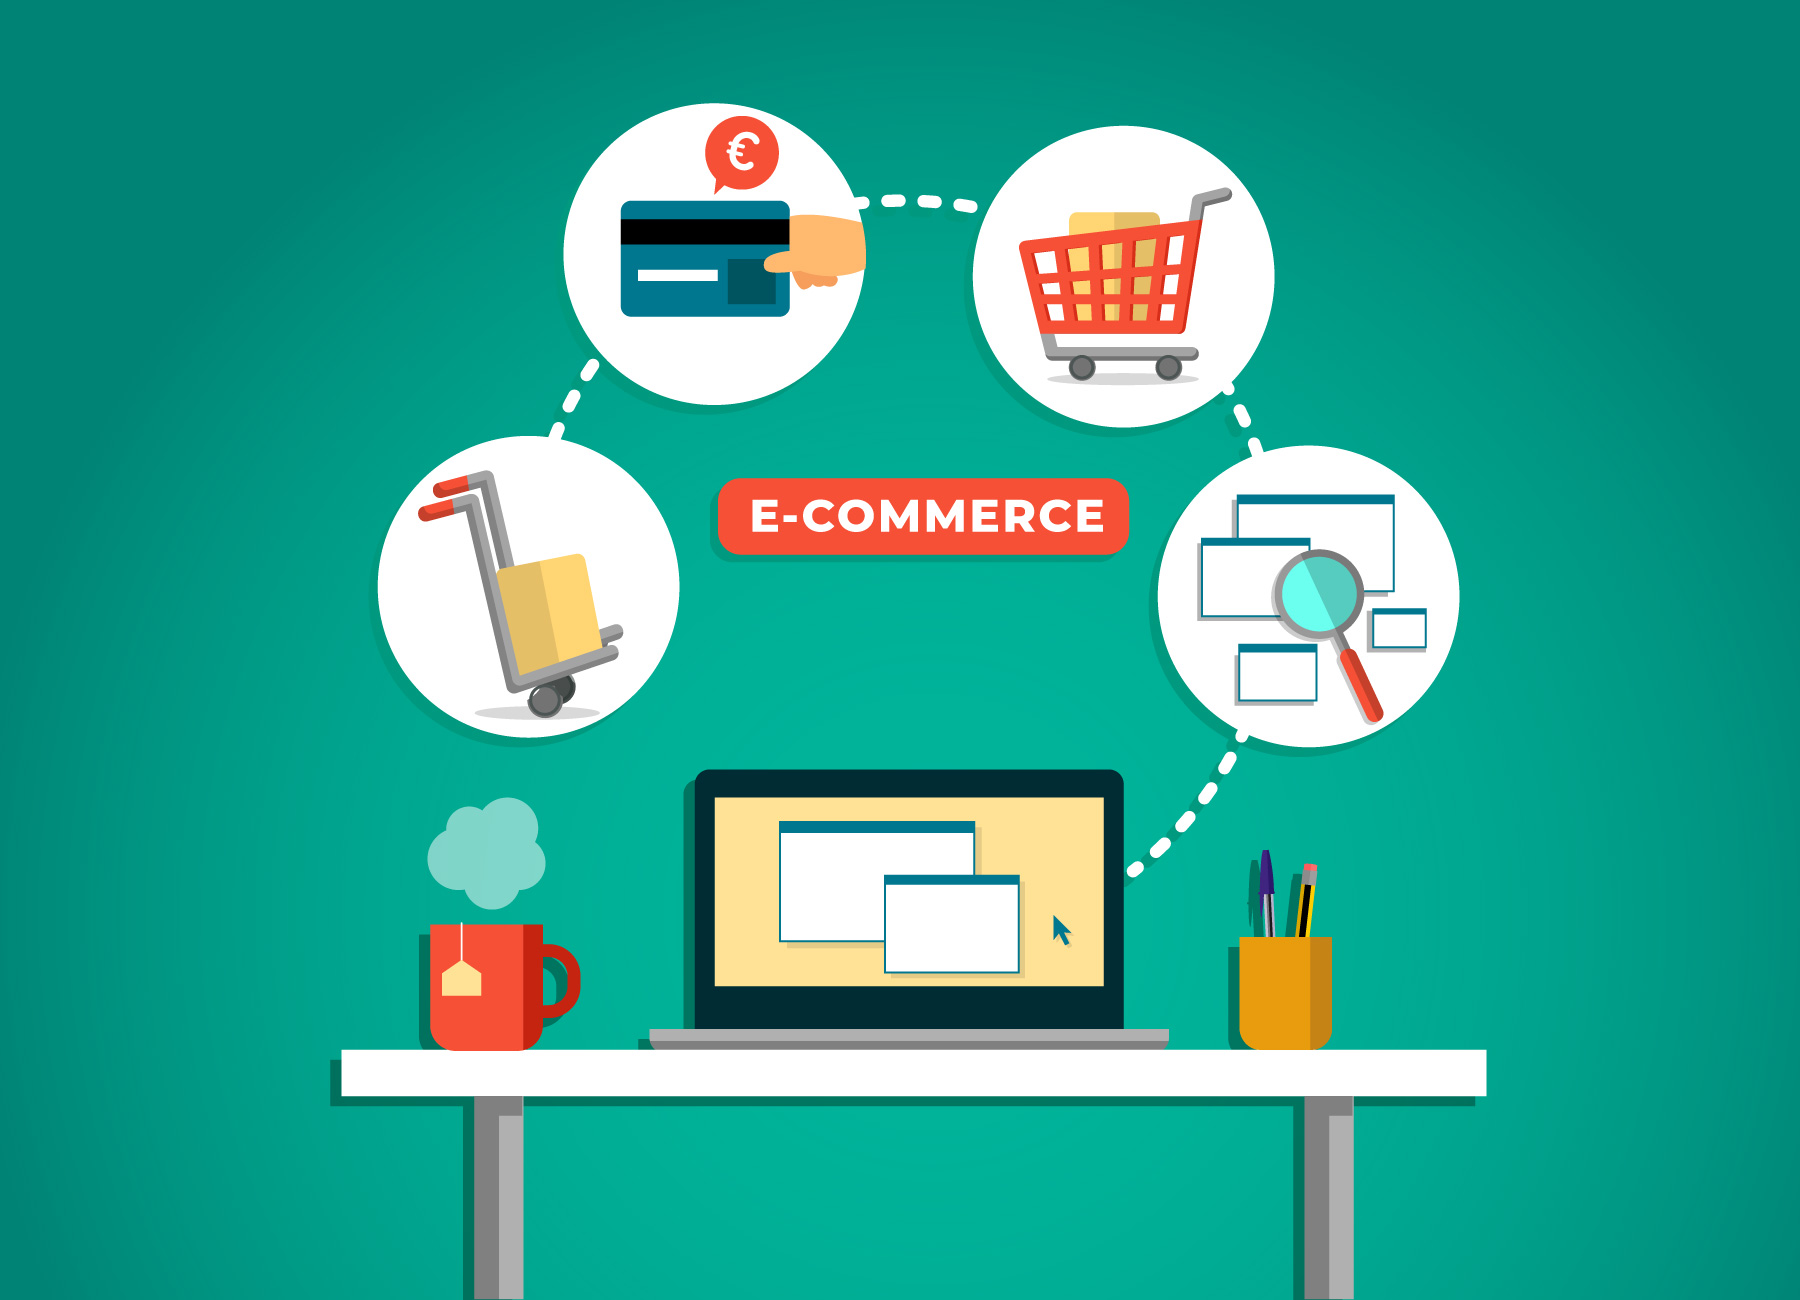 ecommerce applications development